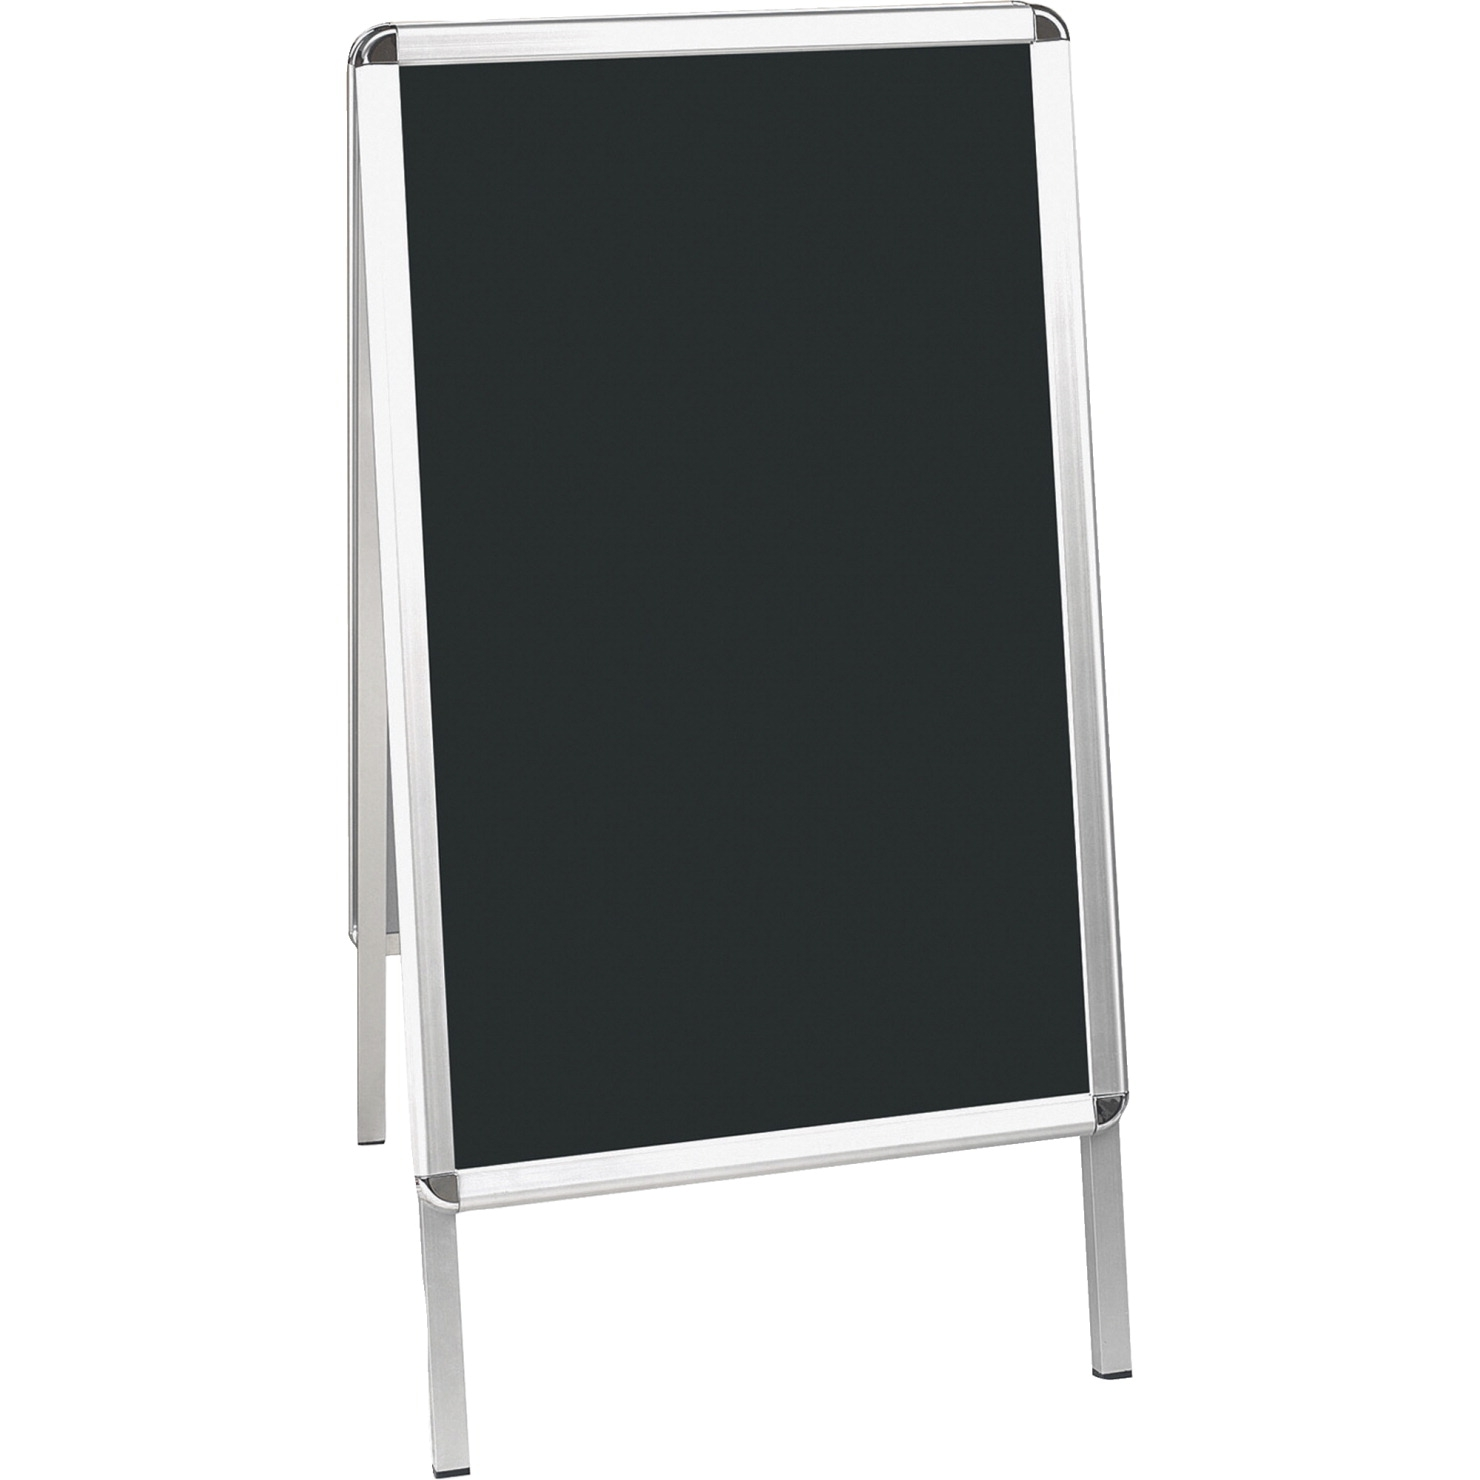 Bi-silque Wet Erase Display Board; 1-7/10 X 24 X 47 In; Aluminum Frame; Black - 1334043 - Toys Easels And Drying Racks 1334043